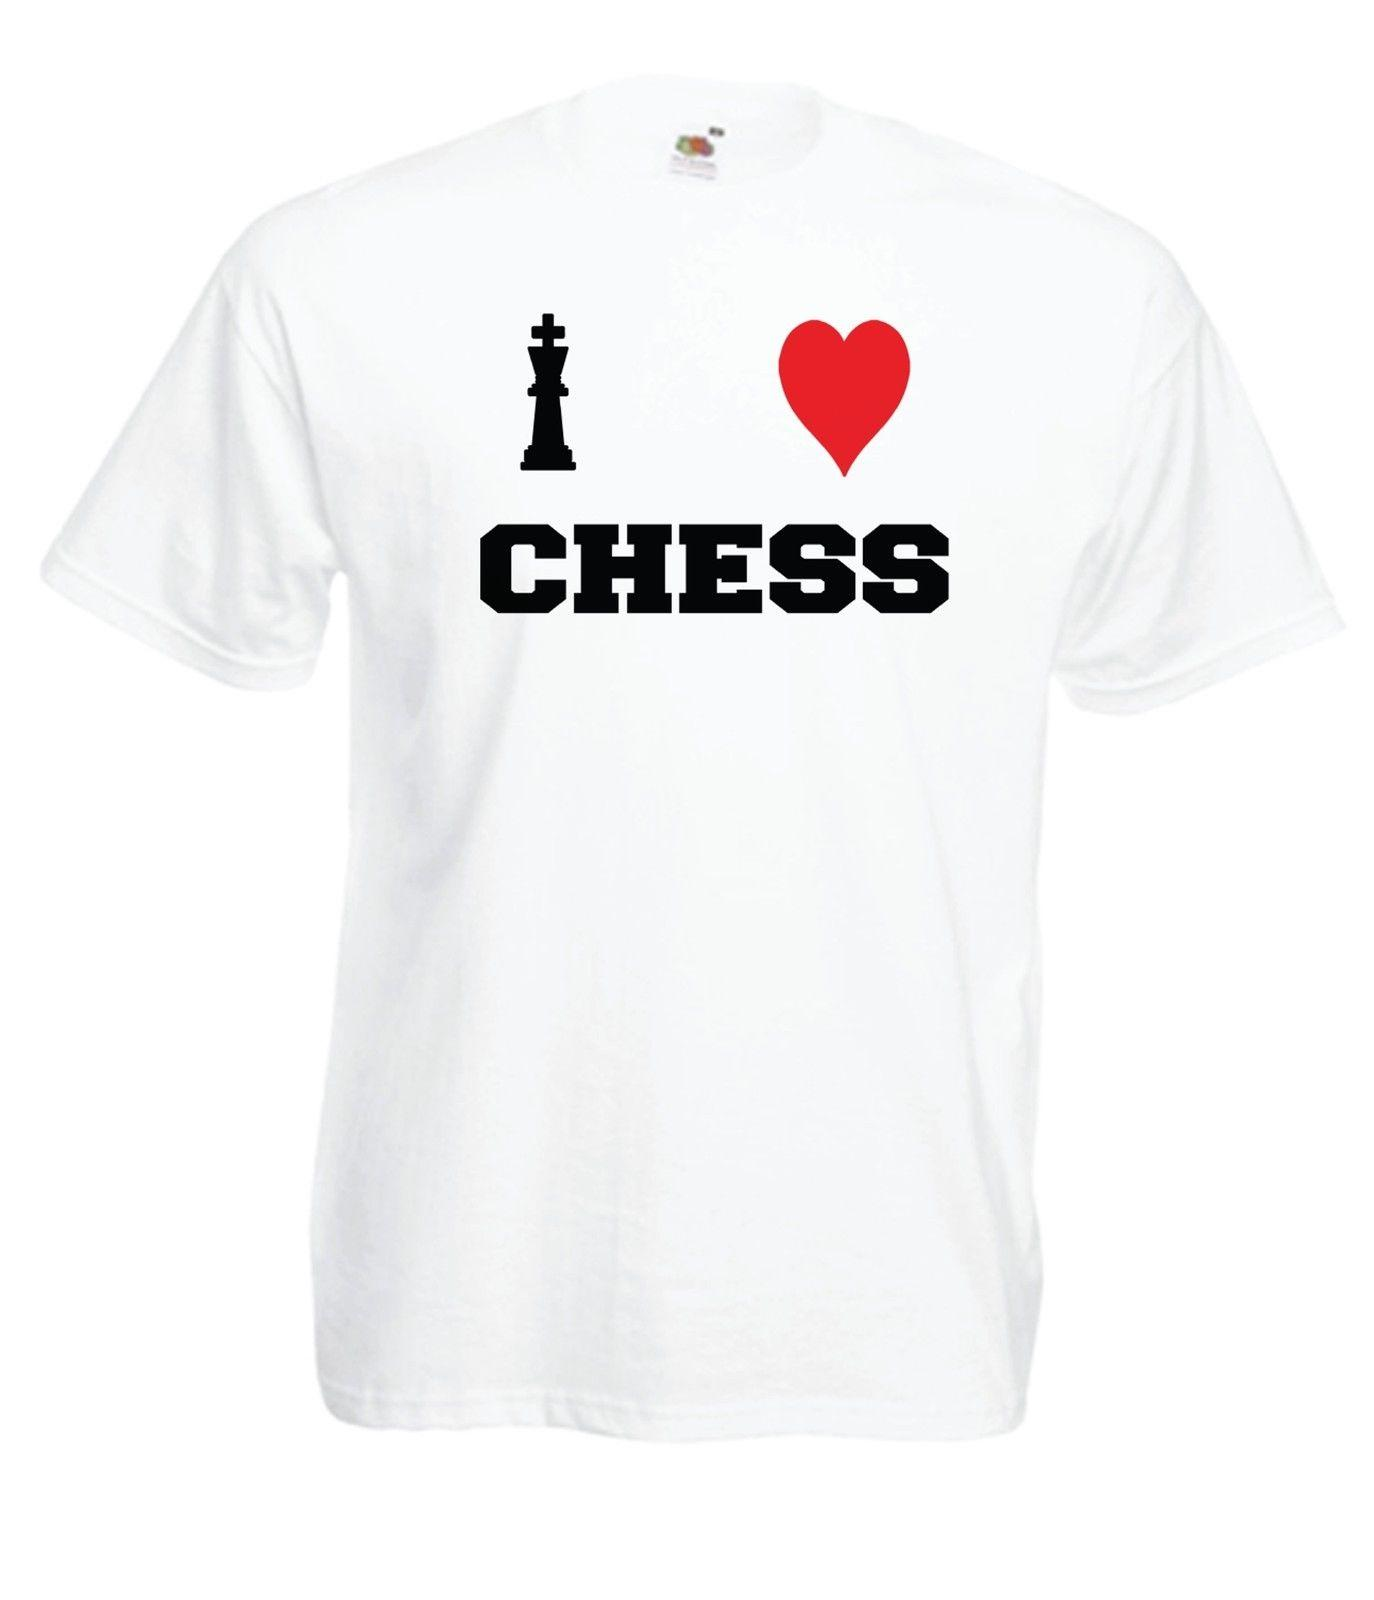 I LOVE CHESS Game Geek Nerd Gamer Birthday Xmas Gift Idea Mens Womens TSHIRT TOP Design Shirts Cool Tshirts From Goodclothes79 1148